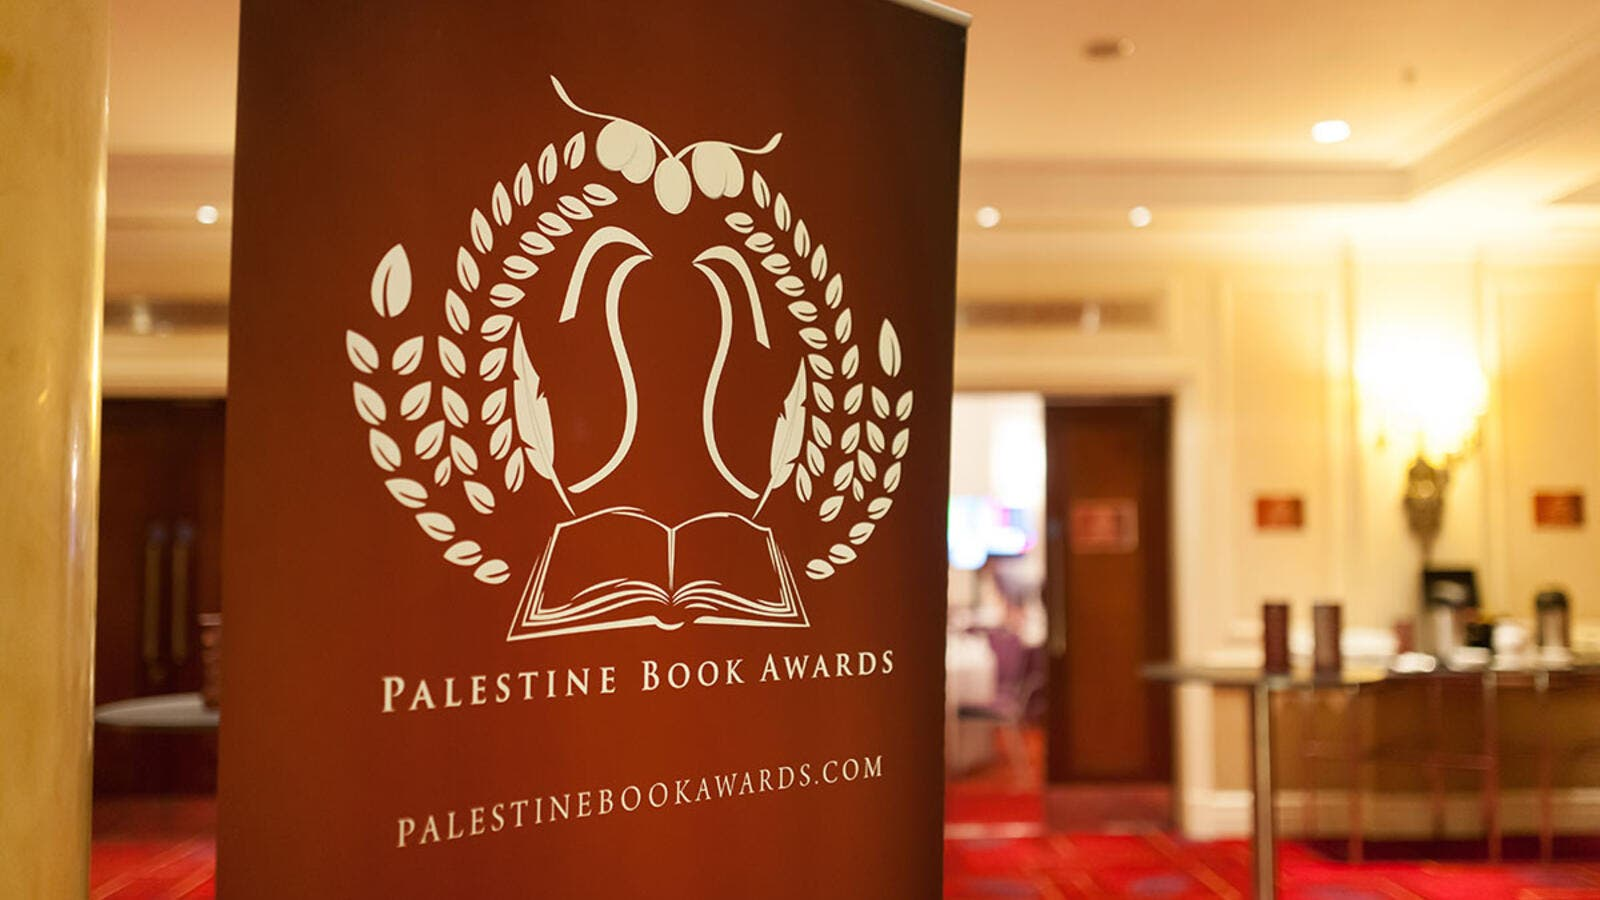 The Palestine Book Awards are as exciting as ever! (Middle East Monitor)